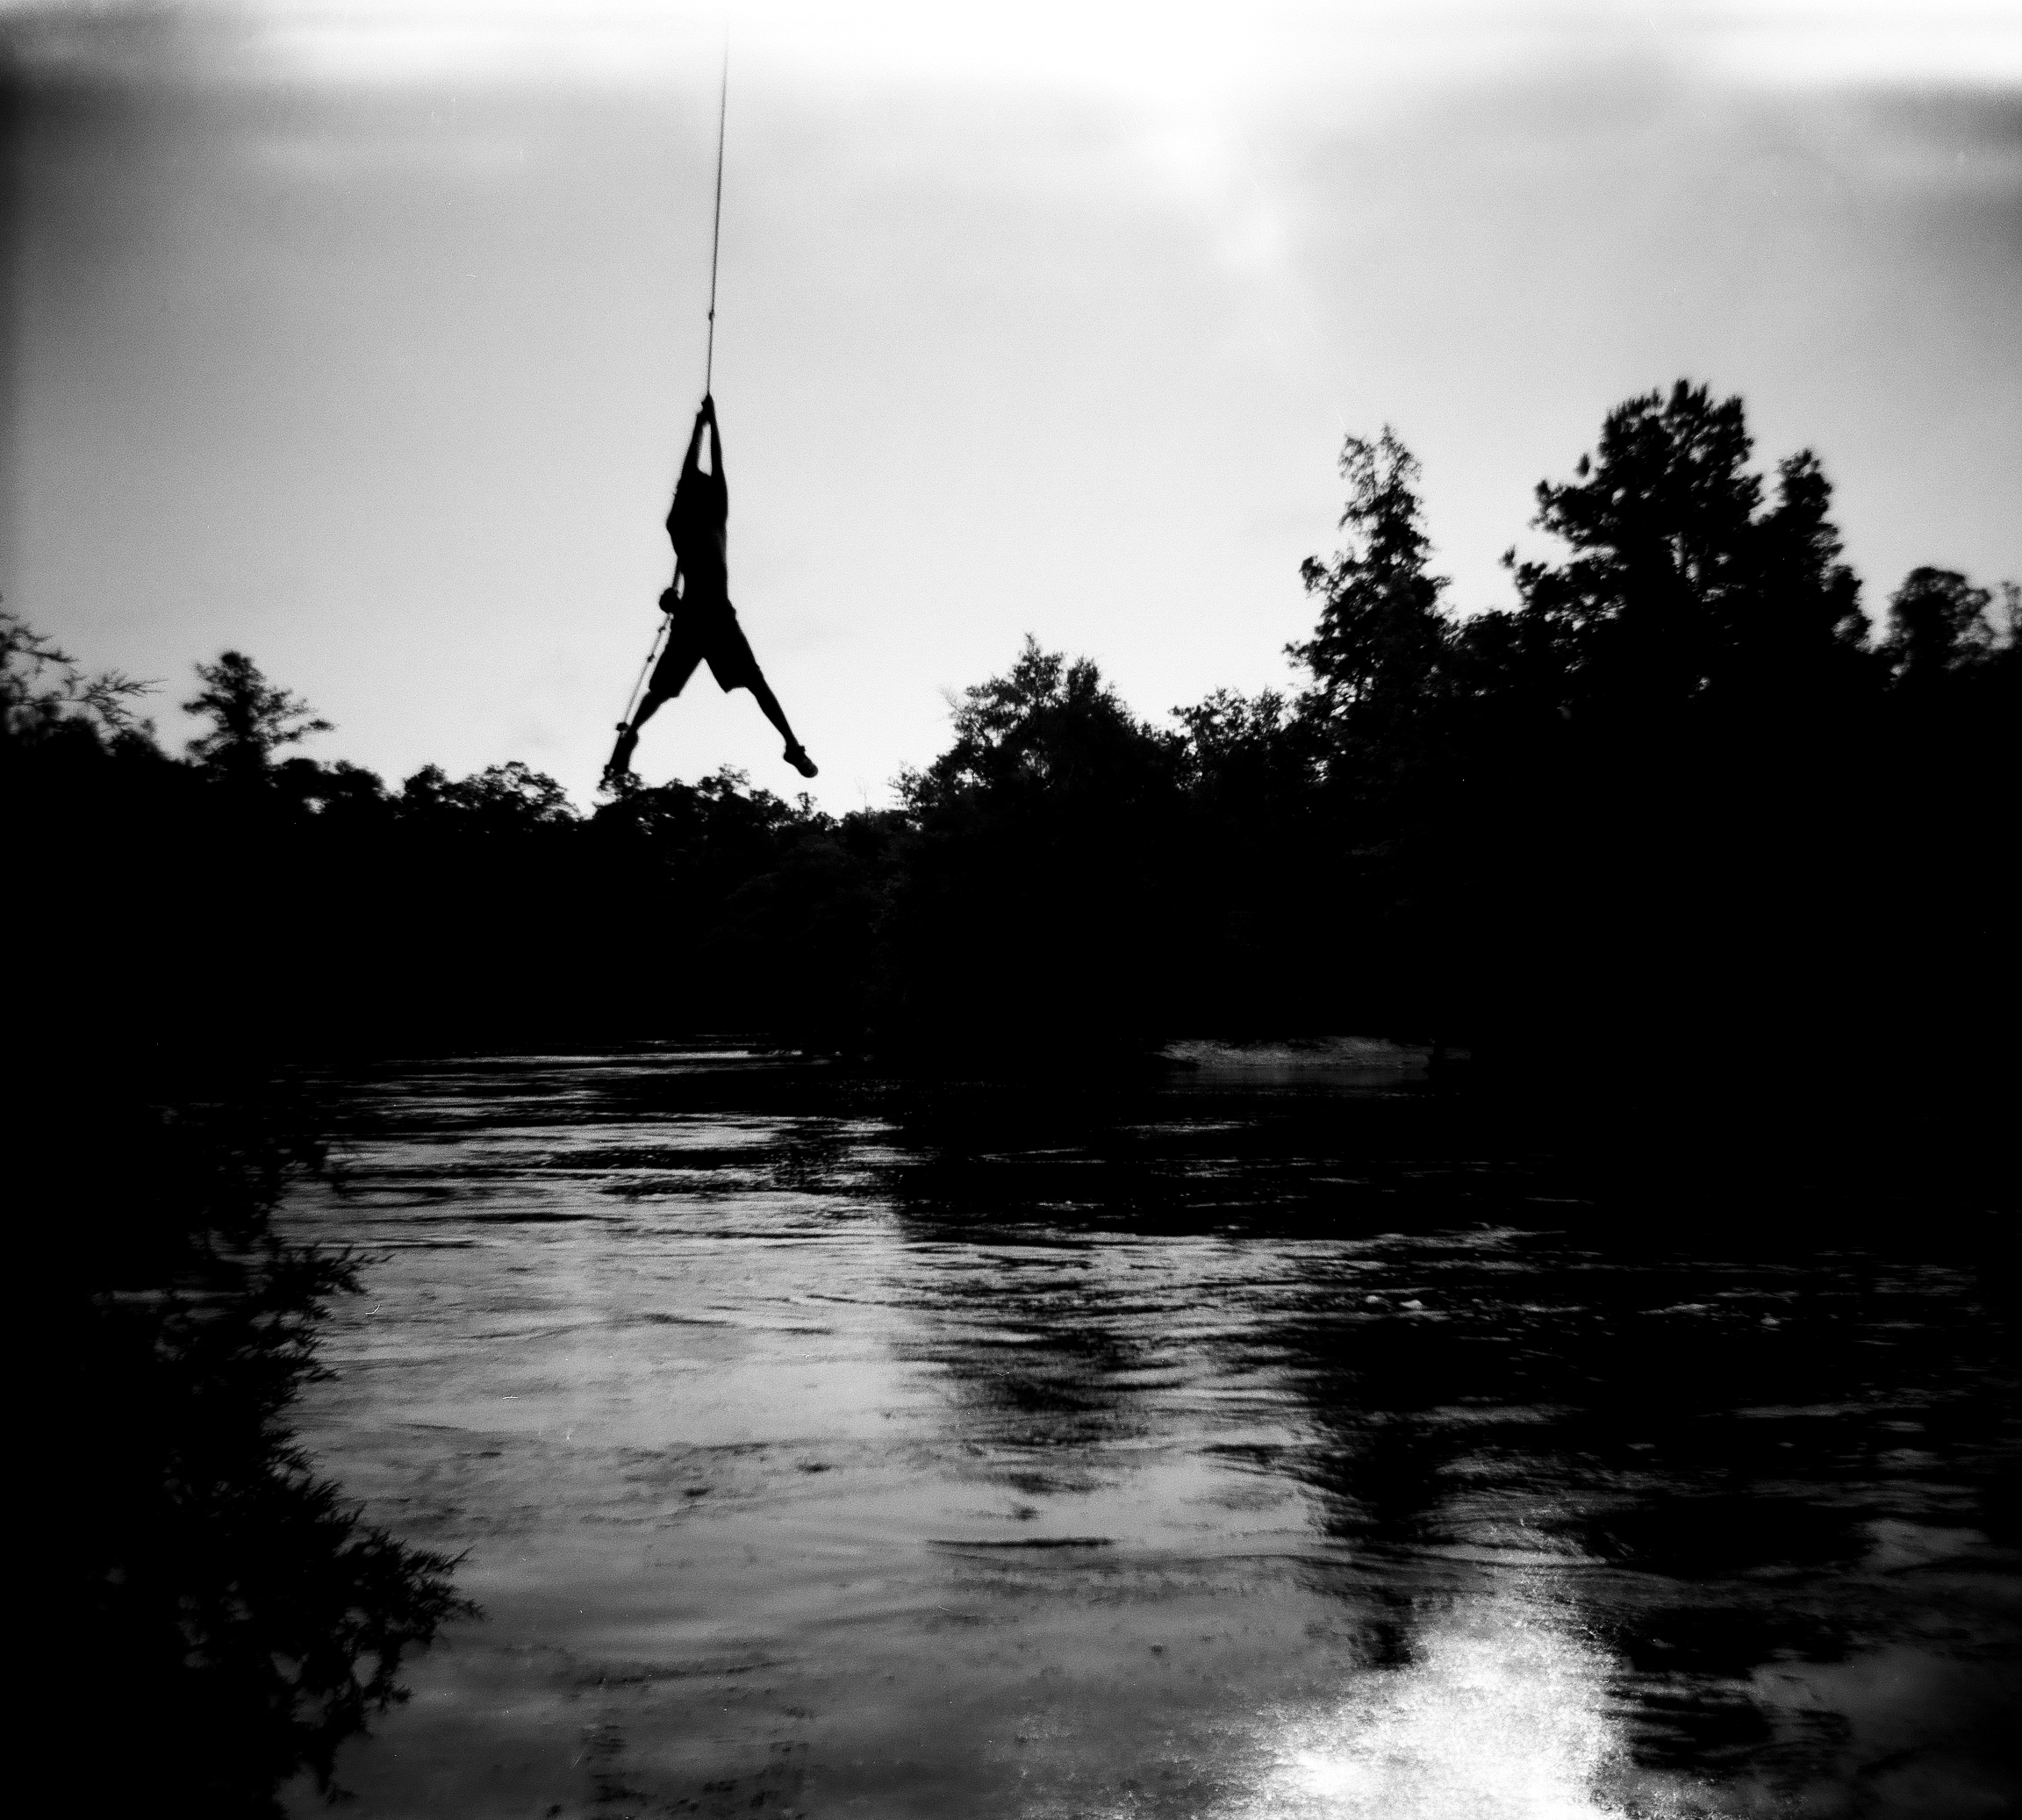 Rope Swing Revisited